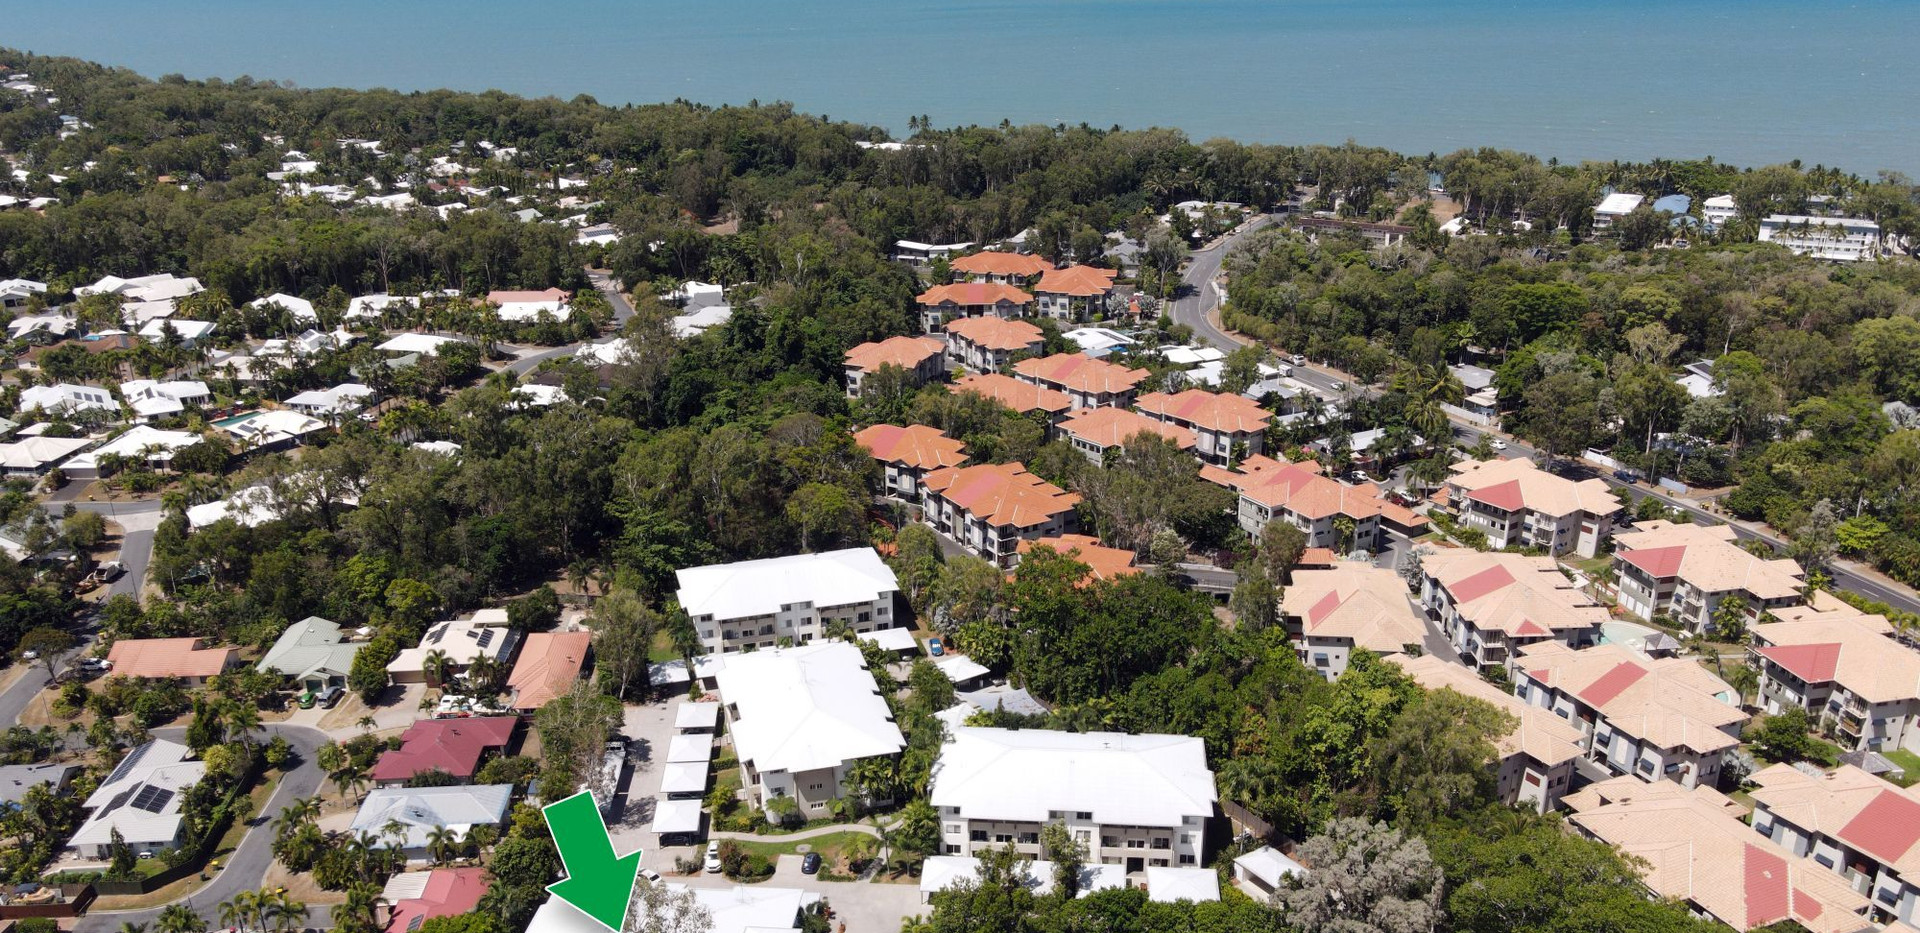 8/1804 Captain Cook Highway Clifton Beach OBrien Real Estate Cairns & Beaches Daniel Arnott Monique Cruse